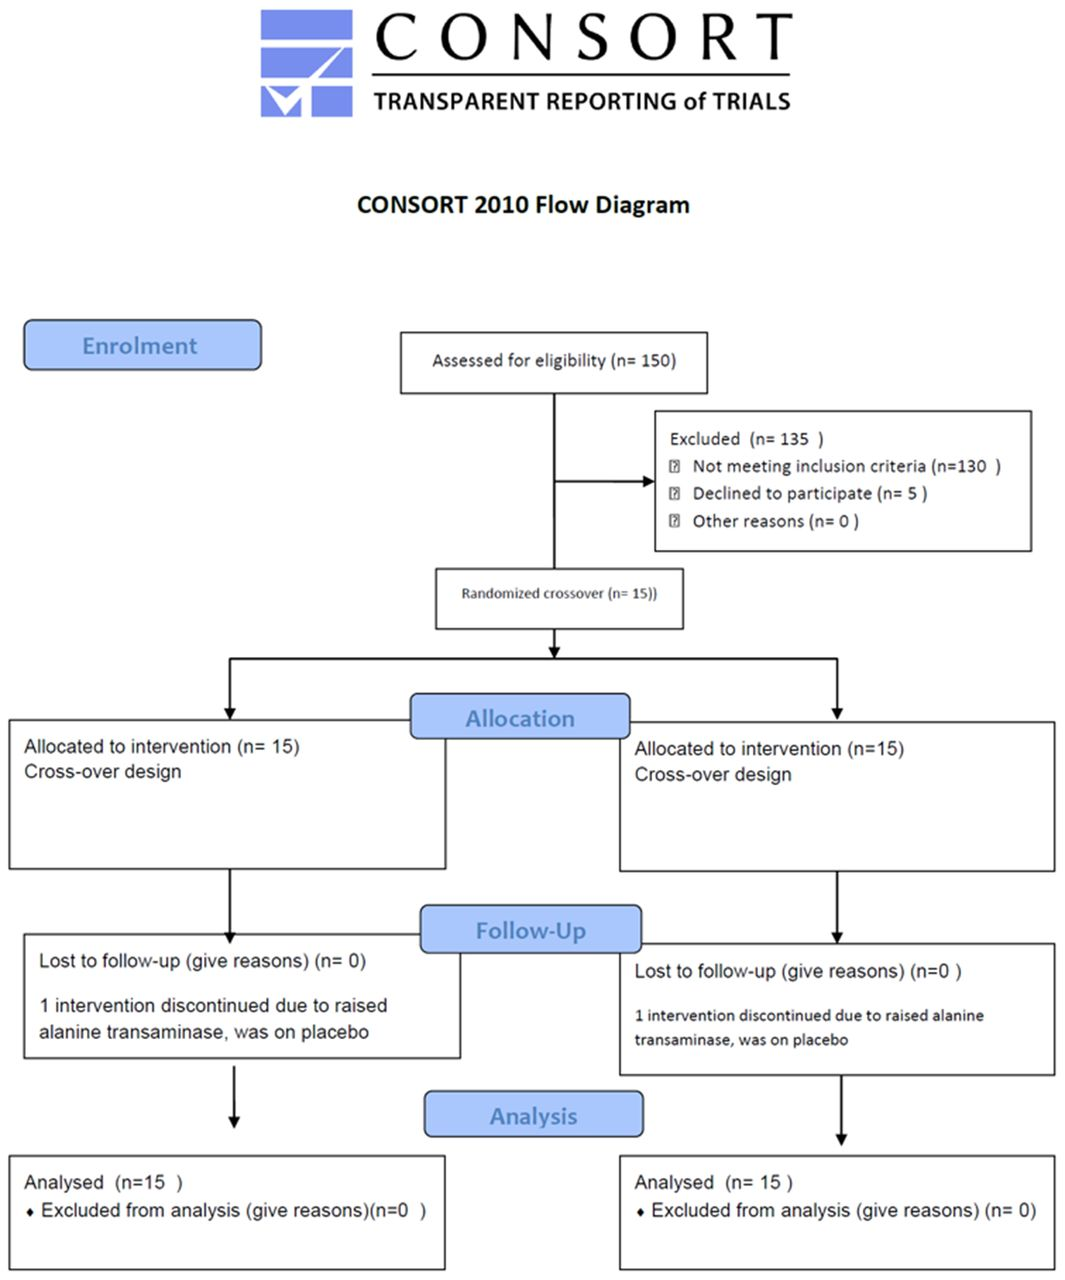 Cardiometabolic effects of a novel sirt1 activator srt2104 in download figure open in new tab download powerpoint figure 2 consort flow diagram geenschuldenfo Gallery